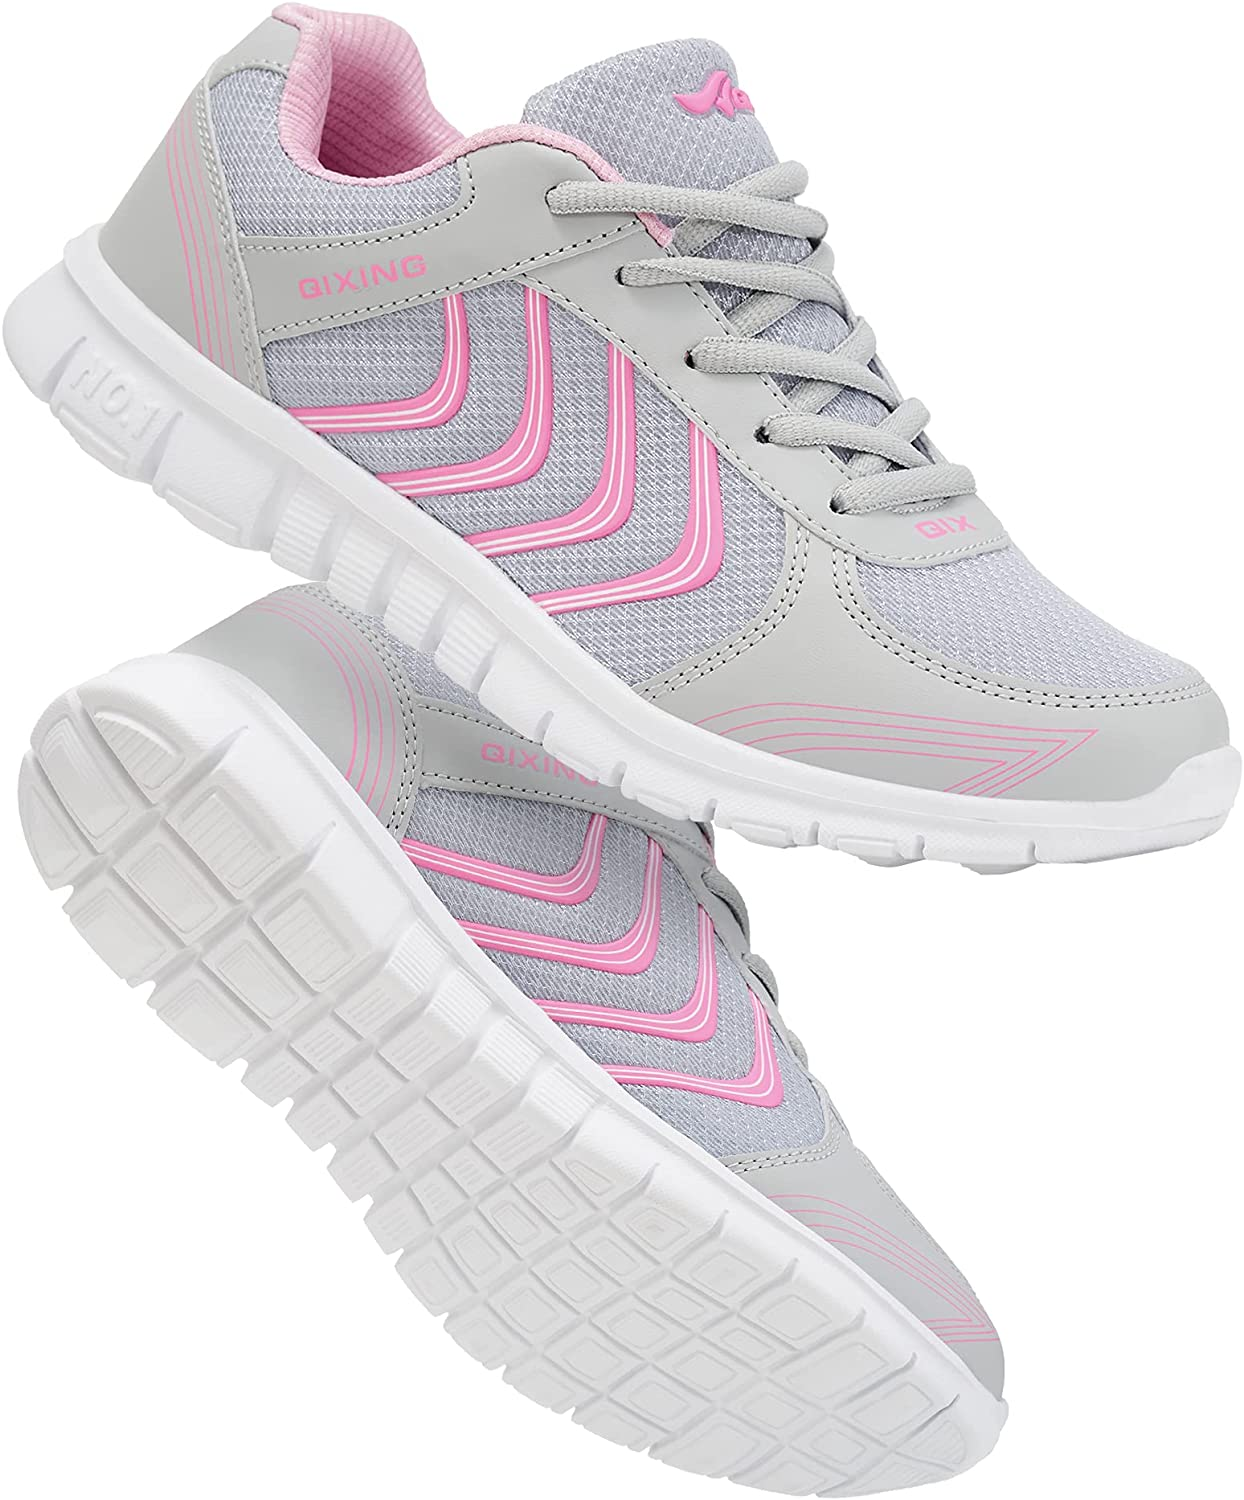 Alicegana Women's Athletic Road Running Lace up Walking Shoes Co